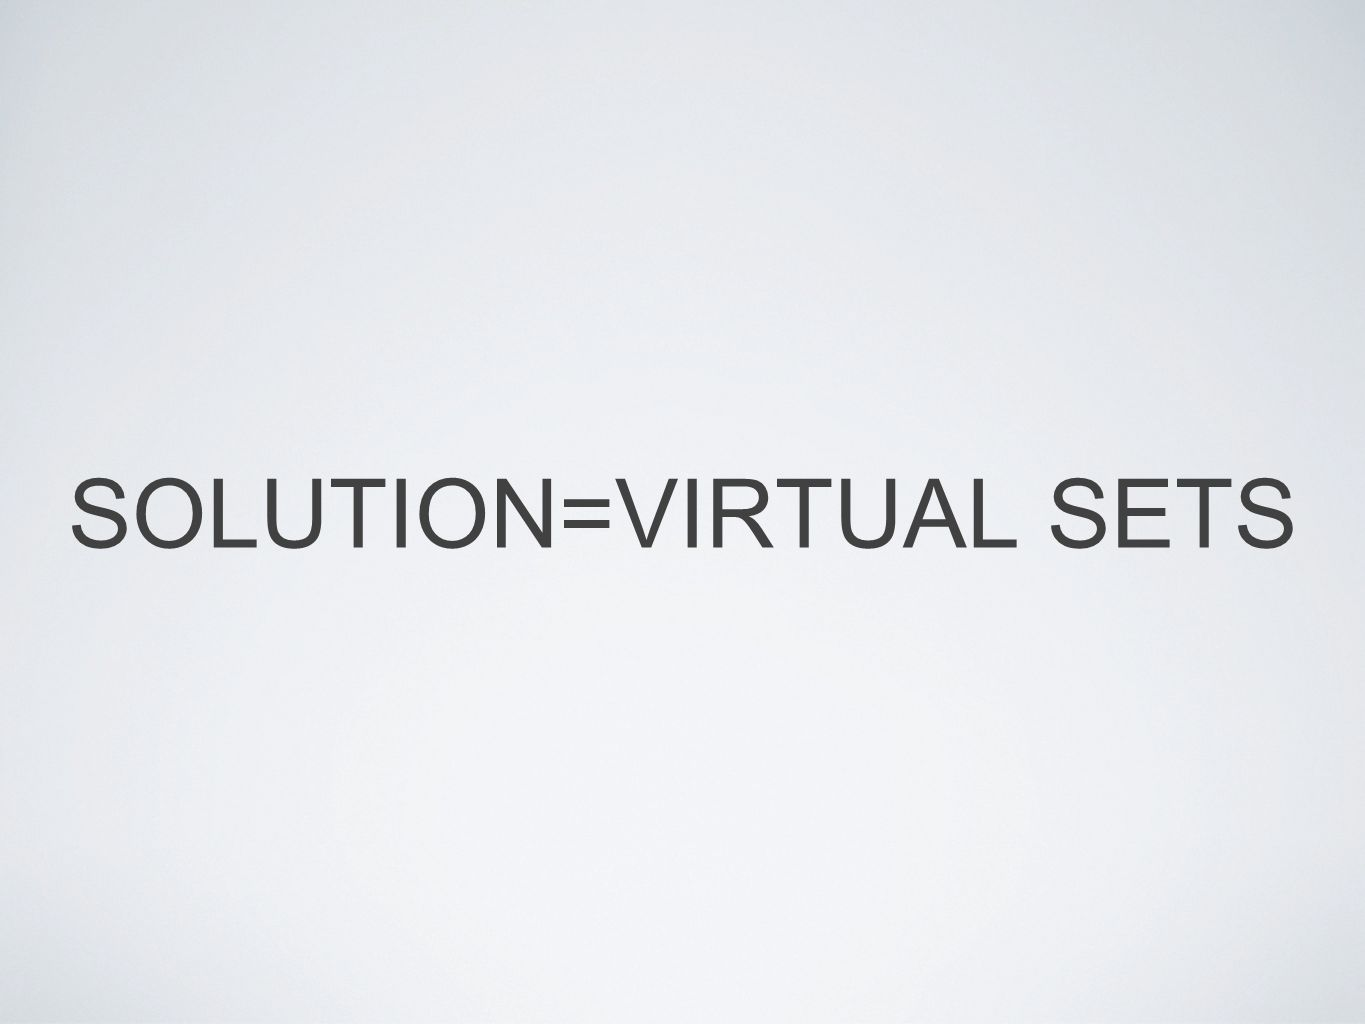 SOLUTION=VIRTUAL SETS